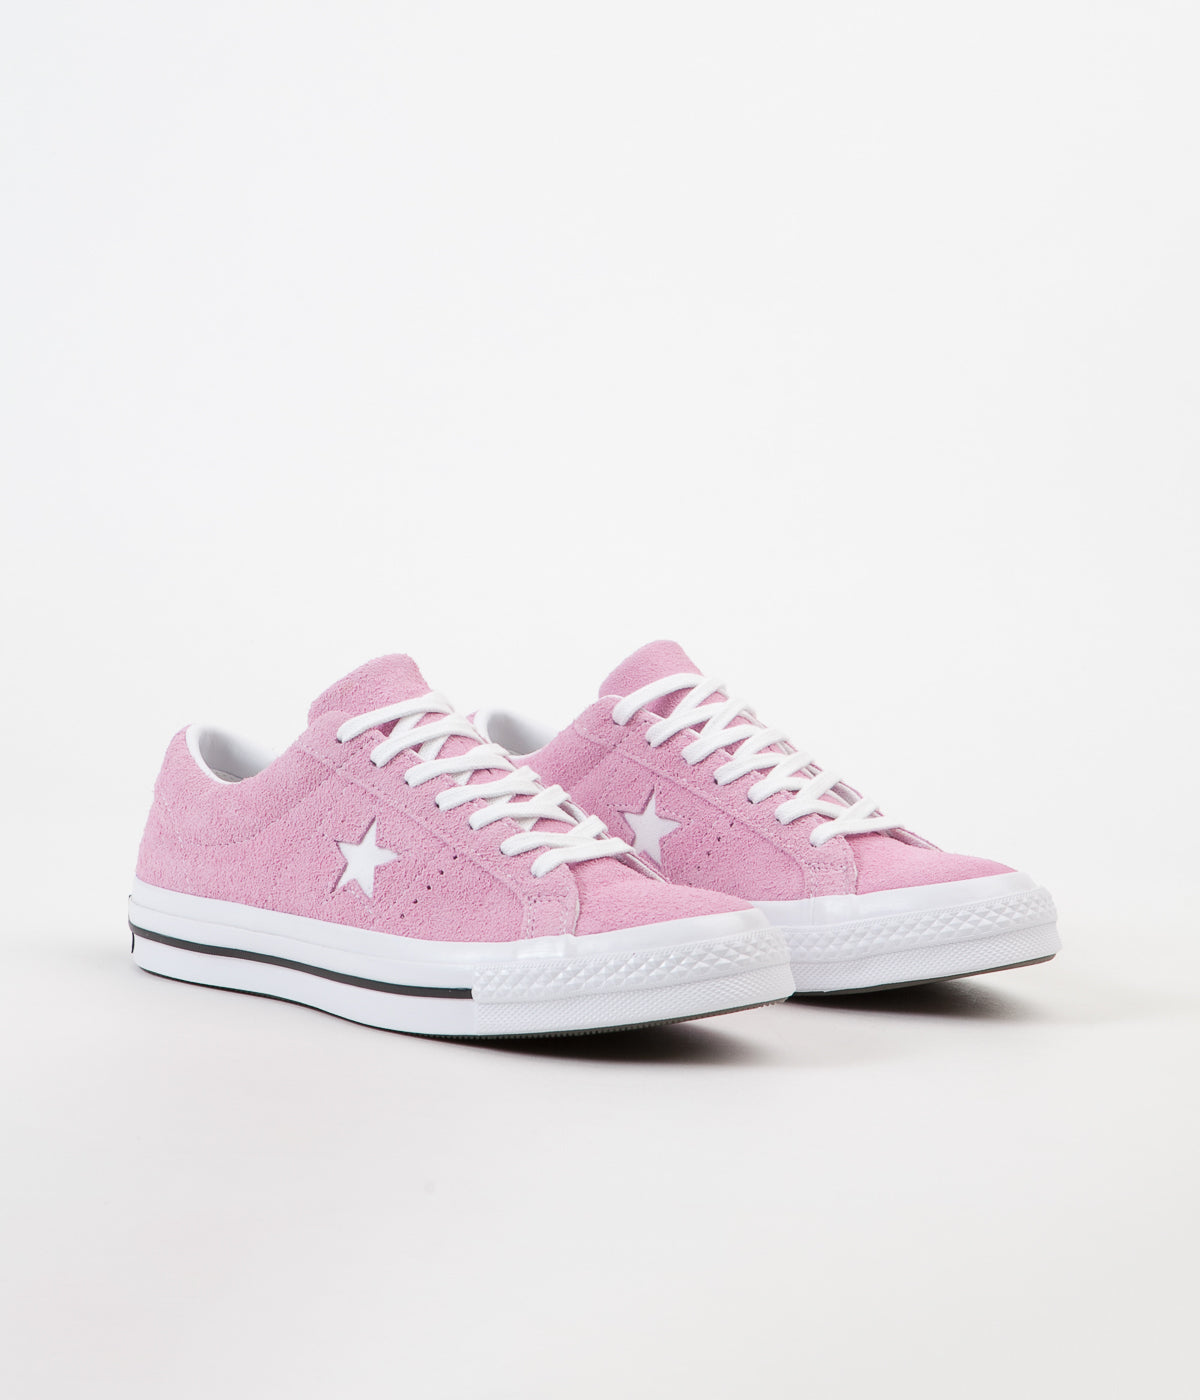 24c72dcee9eb48 ... Converse One Star Ox Shoes - Light Orchid   White   Black ...